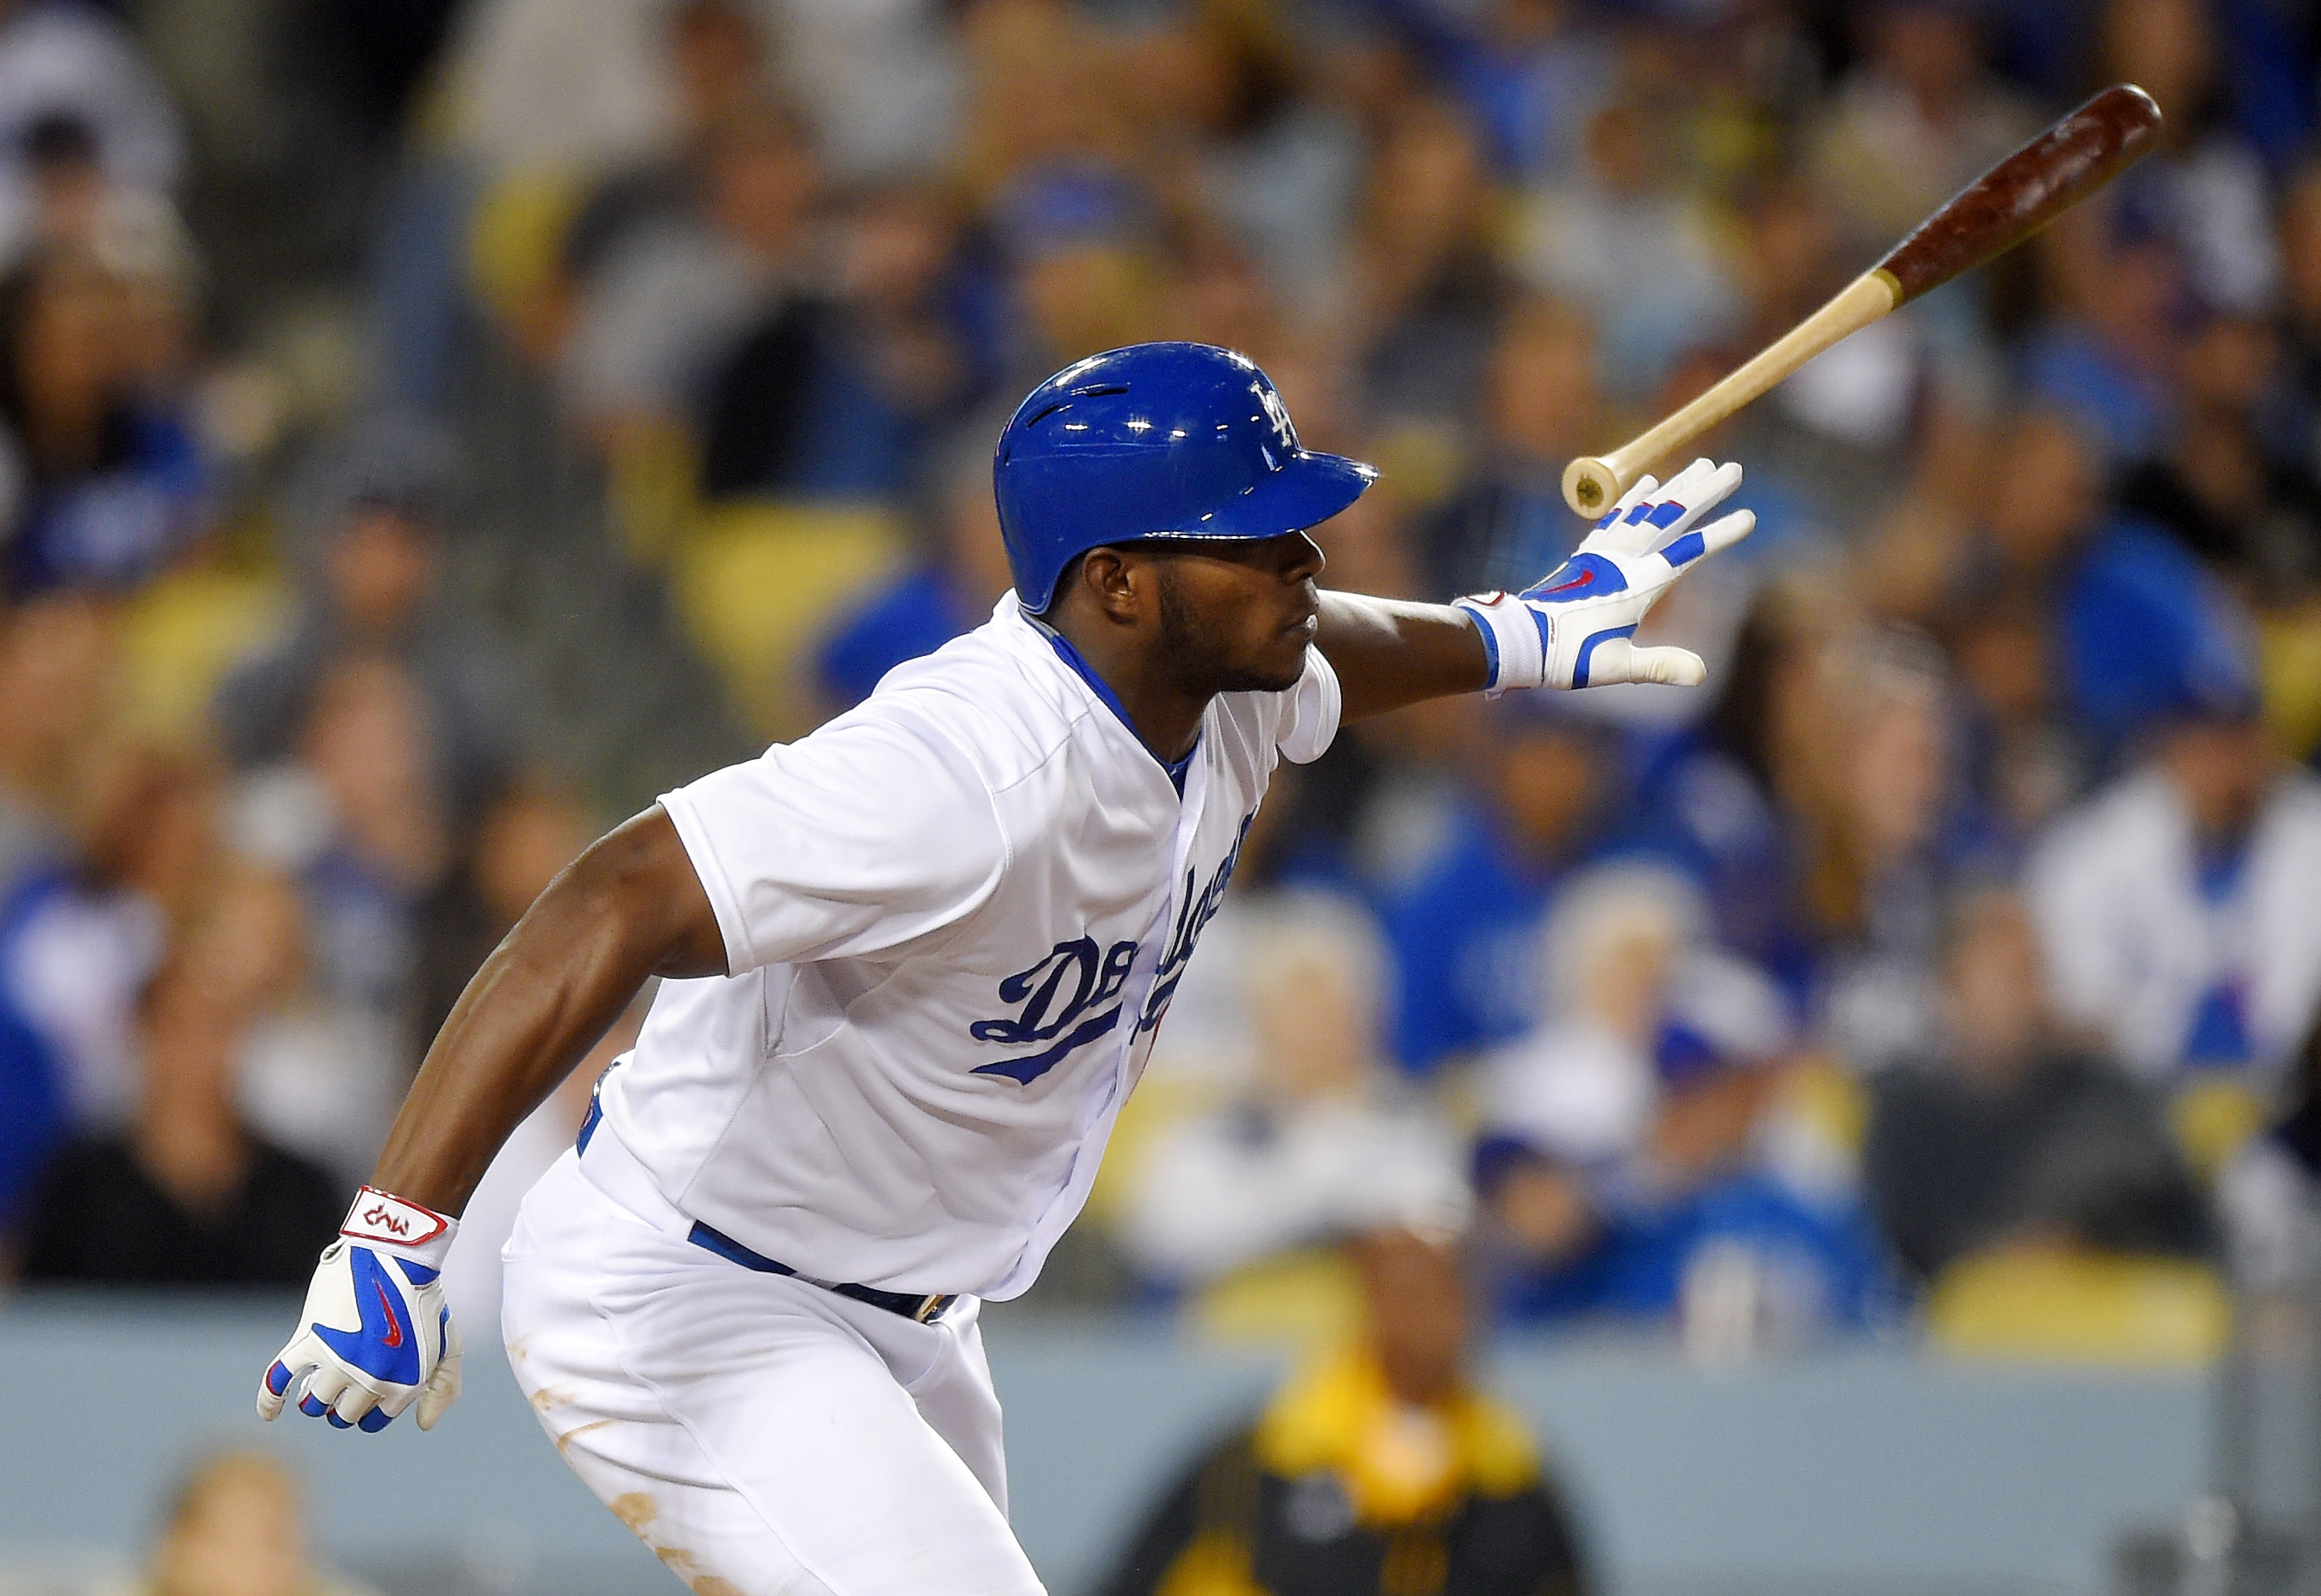 Los Angeles Dodgers' Yasiel Puig tosses his bat after an RBI double during the seventh inning of a baseball game against the Colorado Rockies, Saturday, April 18, 2015, in Los Angeles. (AP Photo/Mark J. Terrill)